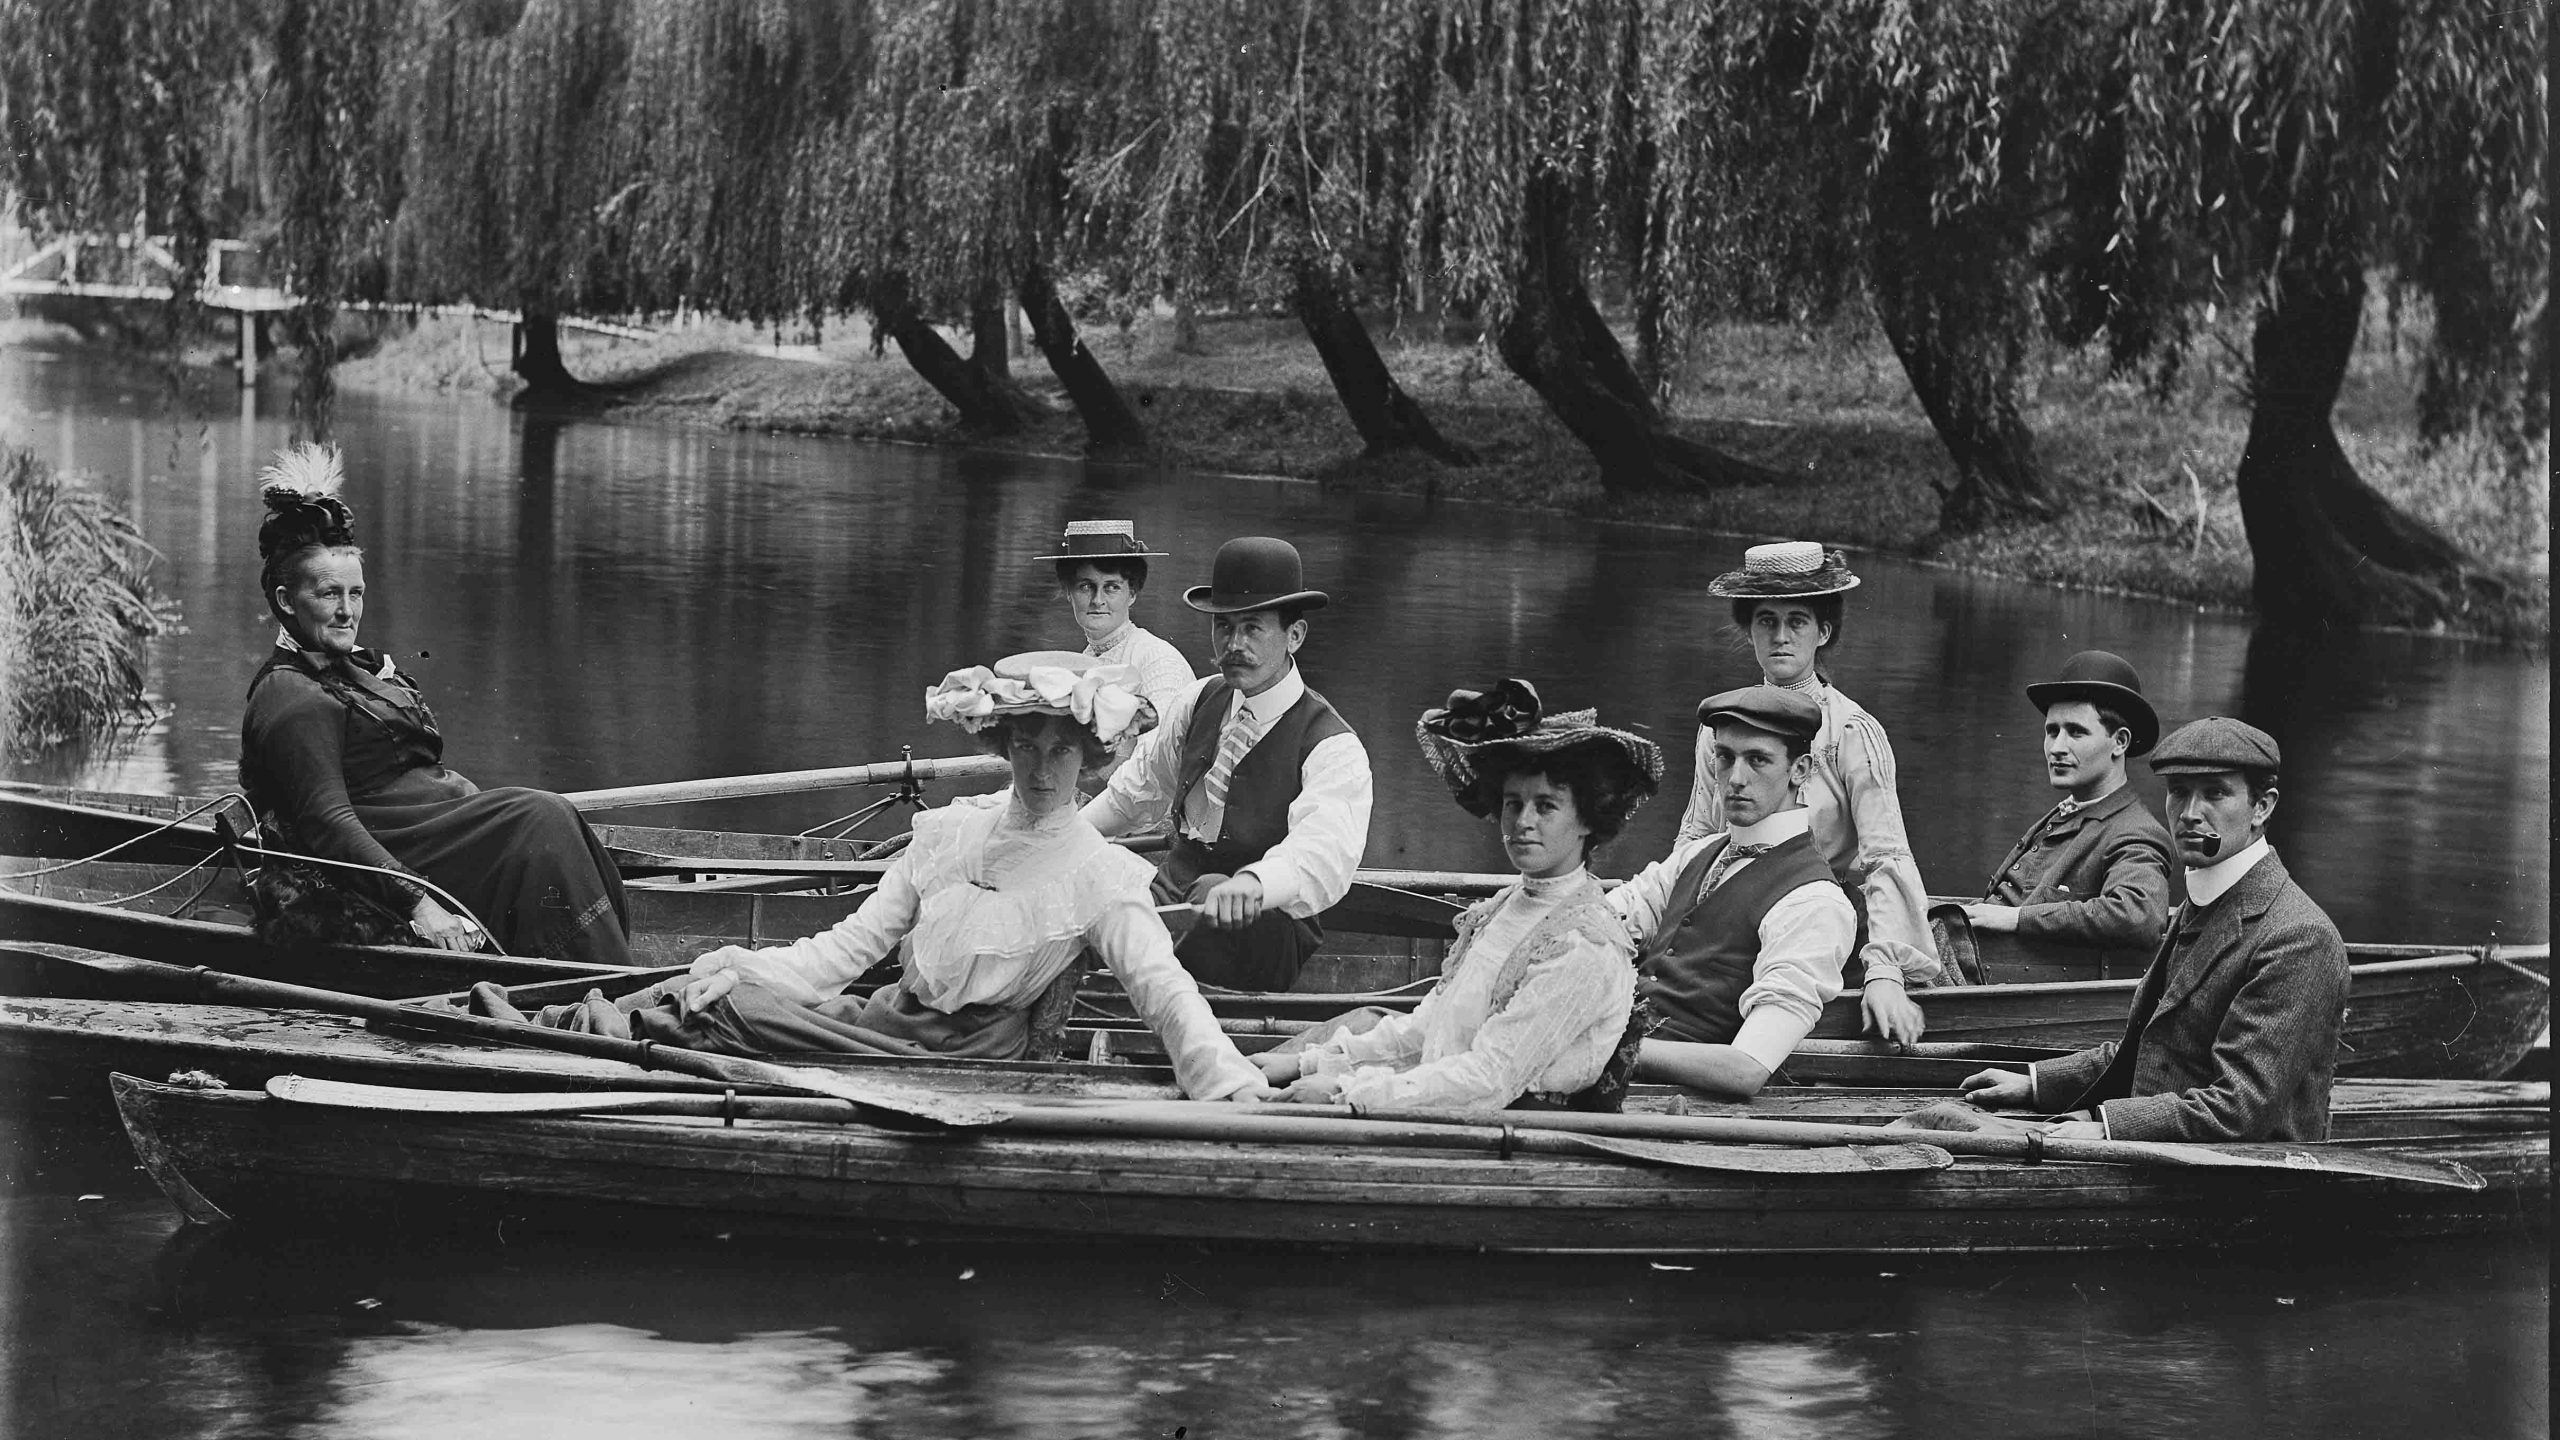 Canterbury Stories site plates up 1900s photo collection